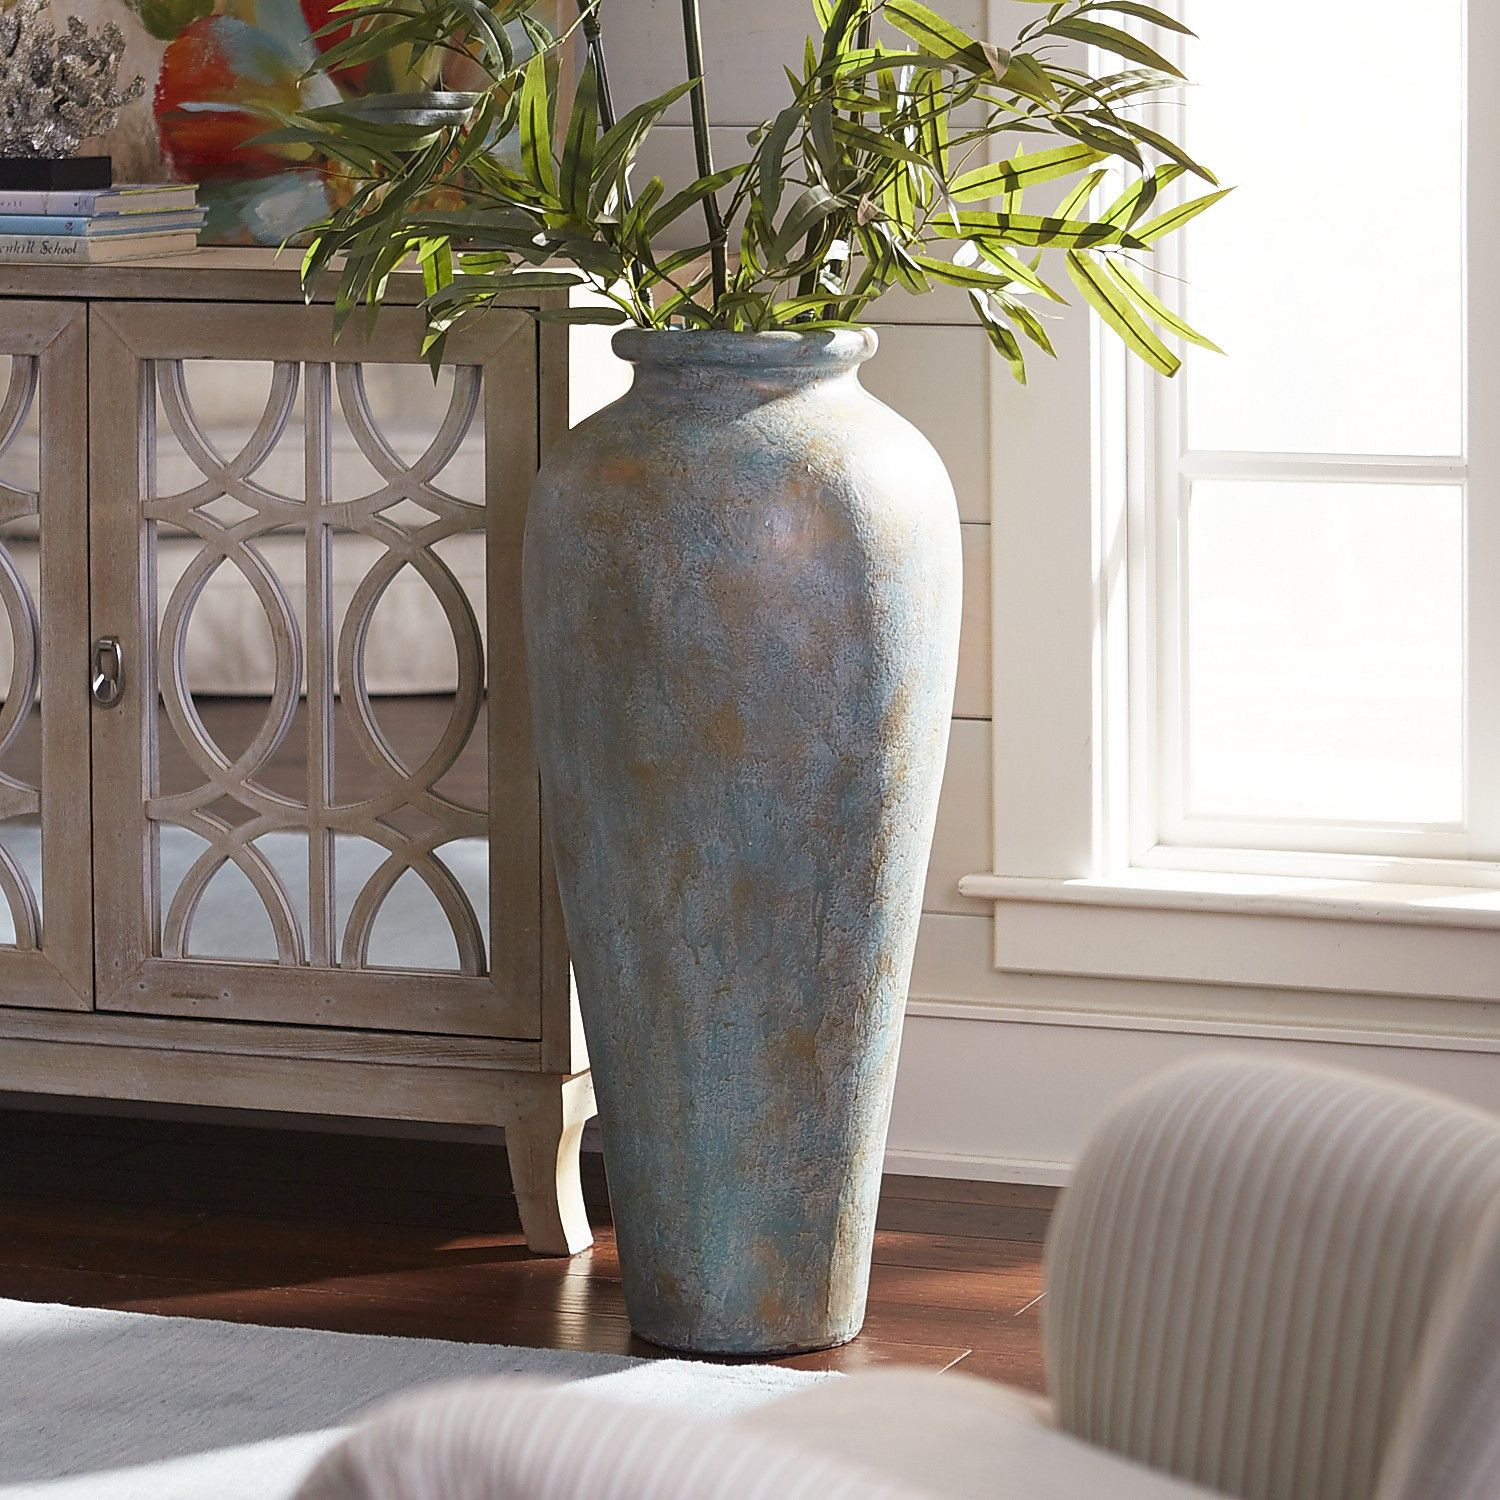 blue bamboo vase of blue green patina urn floor vase products pinterest flooring with blue green patina urn floor vase